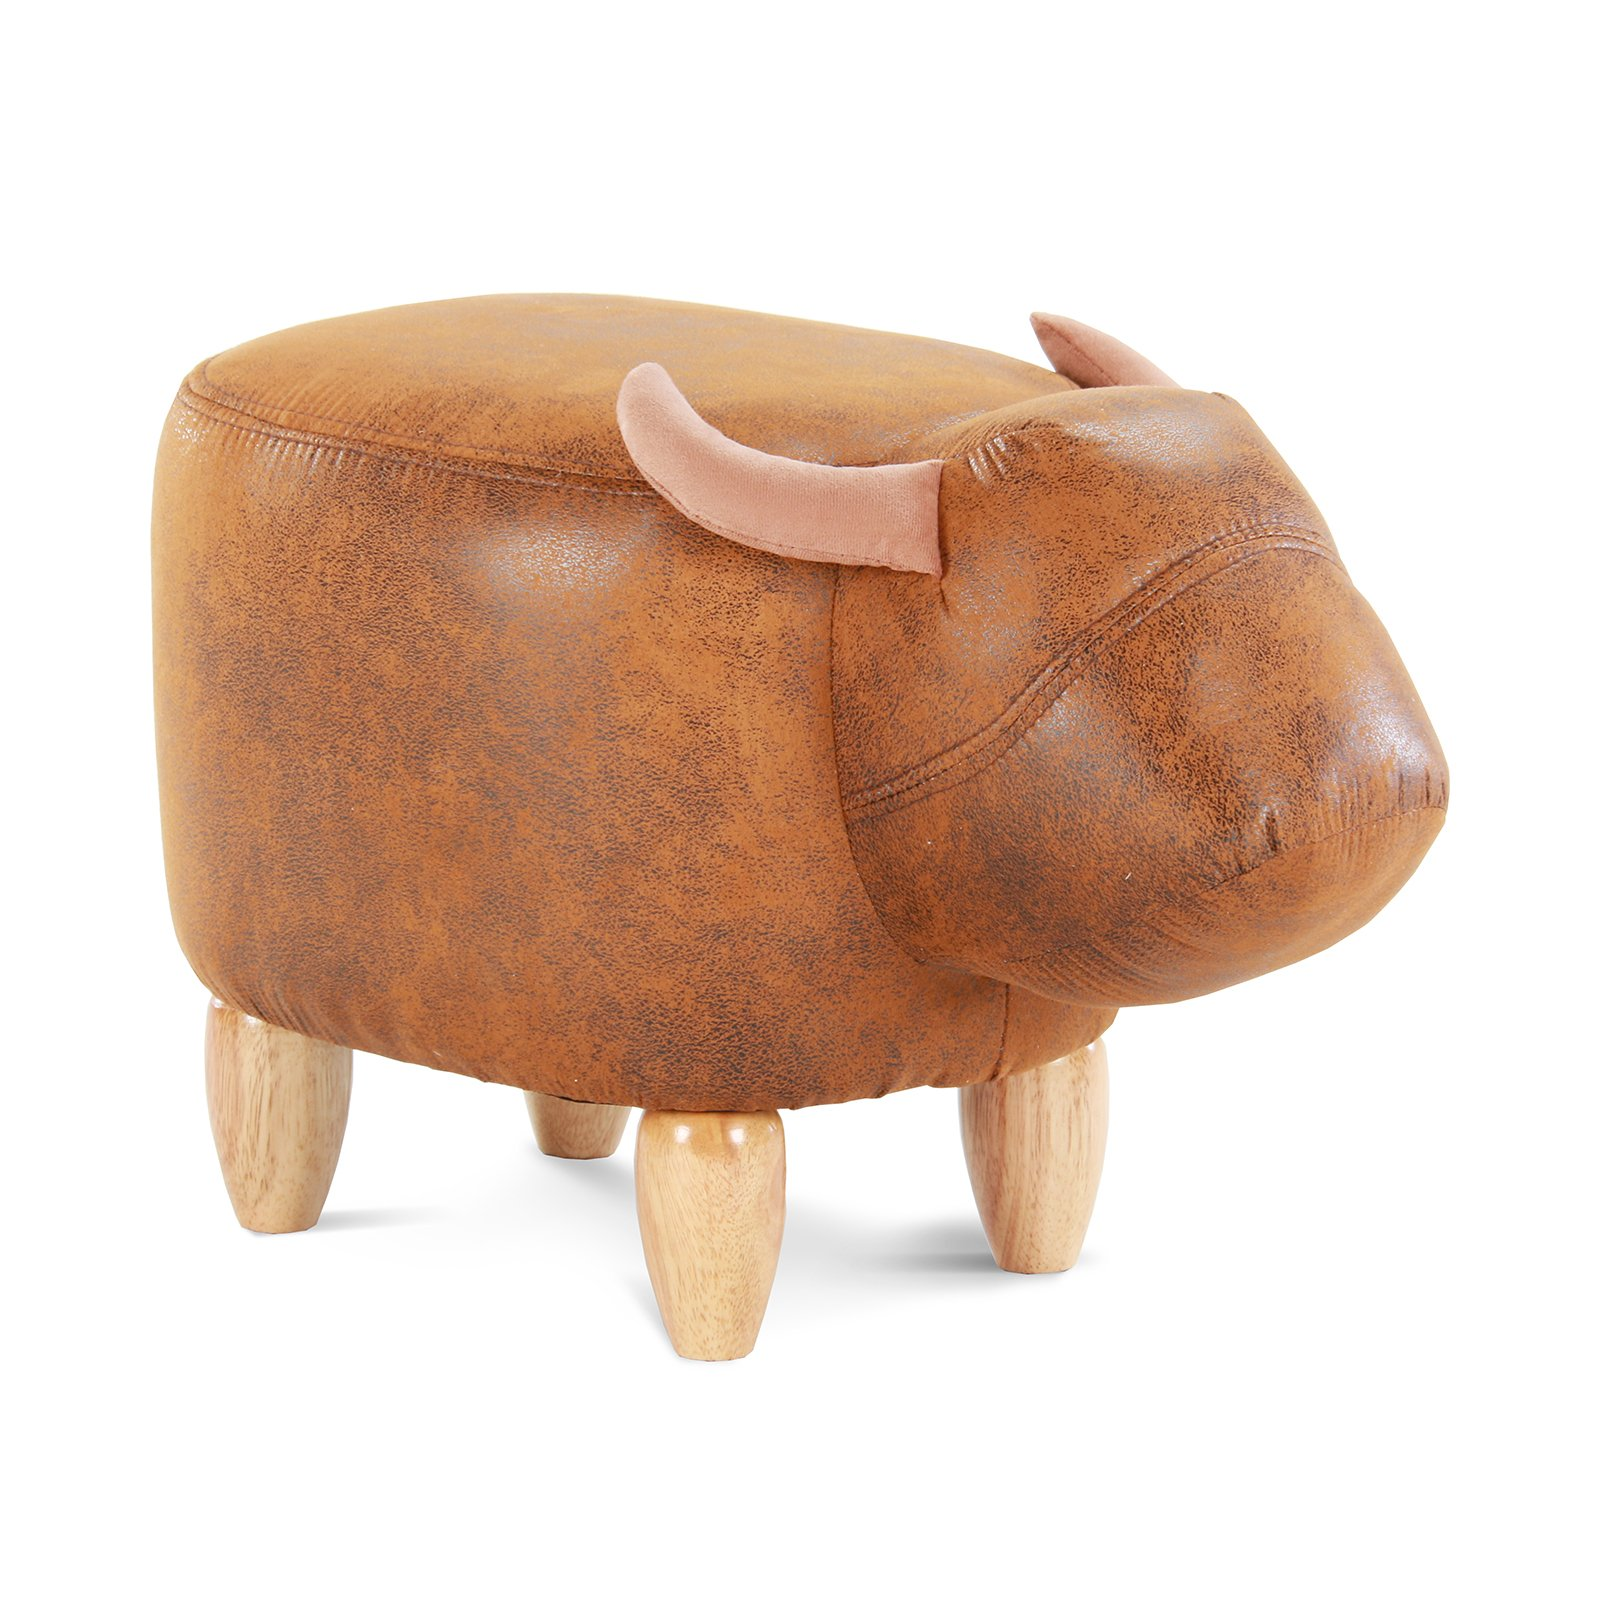 Artechworks Upholstered Ride-On Animal Ottoman Footrest Stool with Vivid Adorable Animal-Like Features,Perfect for Gift, Changing Shoes, Decoration, Toys, Without Storage(Brown Buffalo) by Artechworks (Image #1)